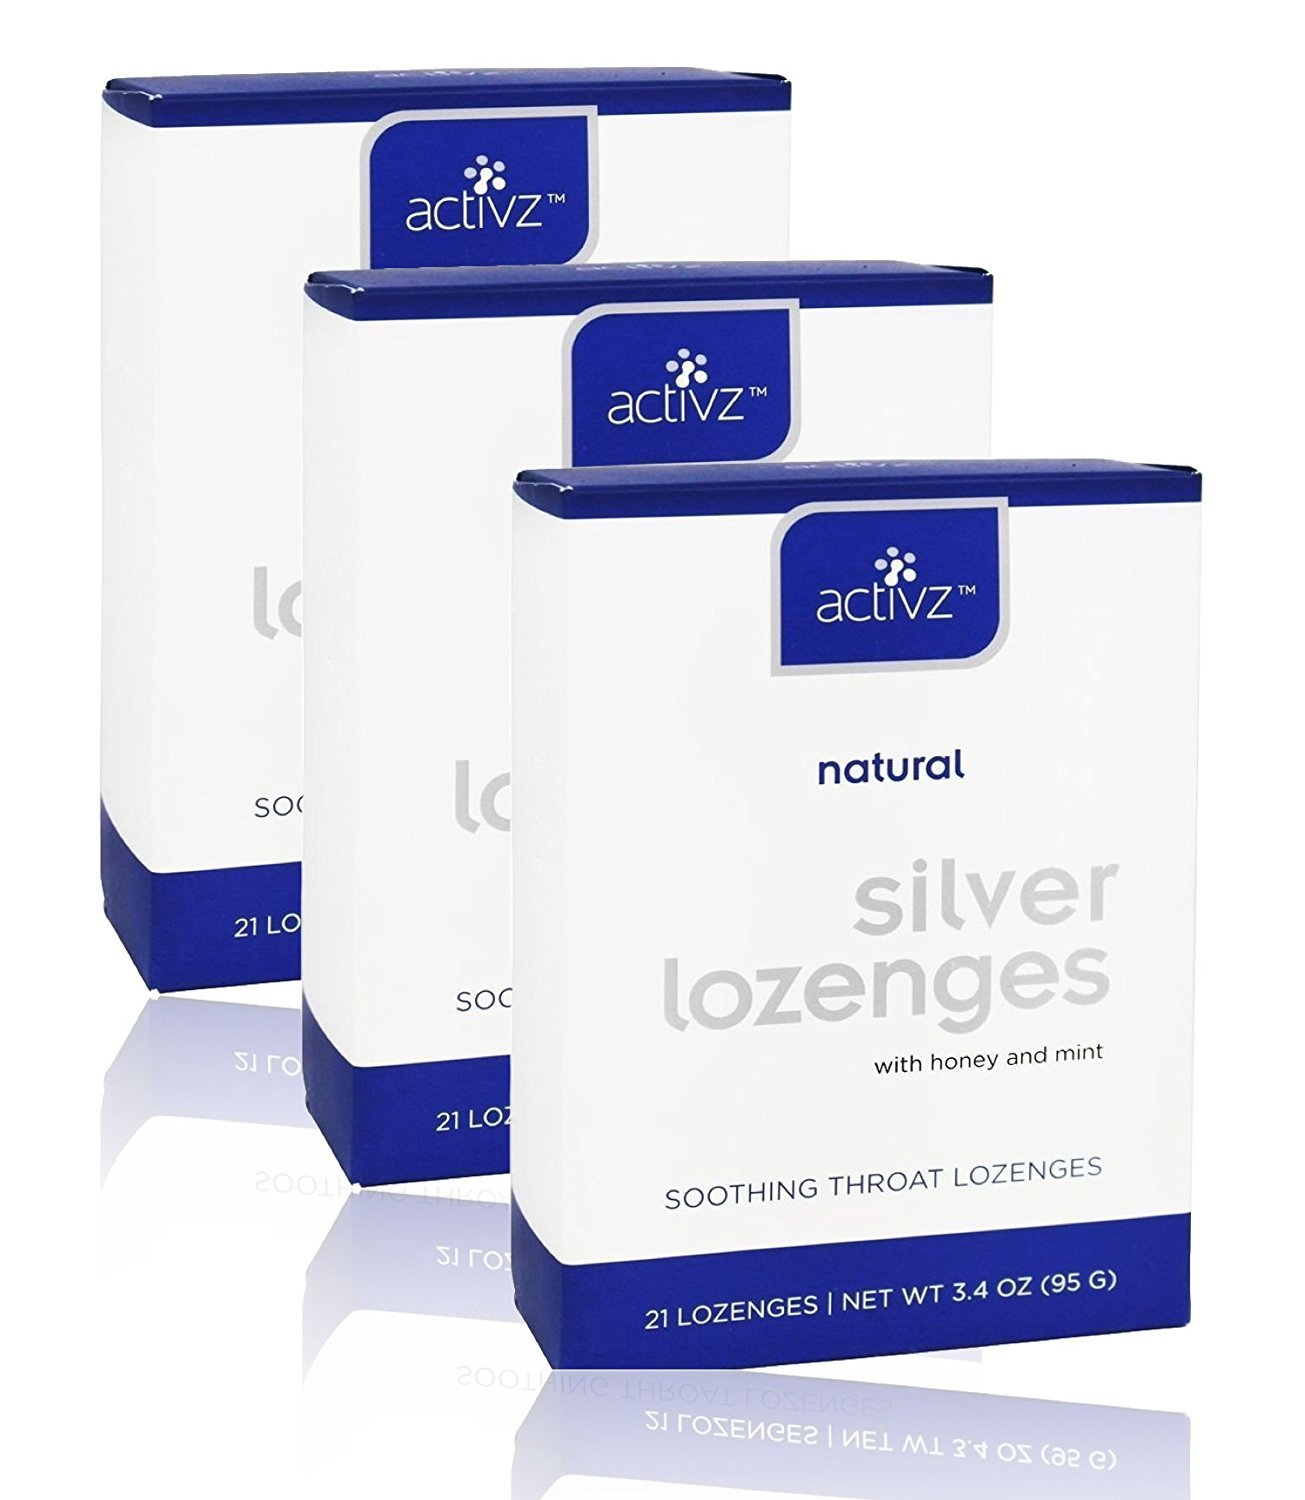 Activz, Silver Lozenges with Honey and Mint, 21 Lozenges, 3.4 oz (95 g) (Pack of 3)